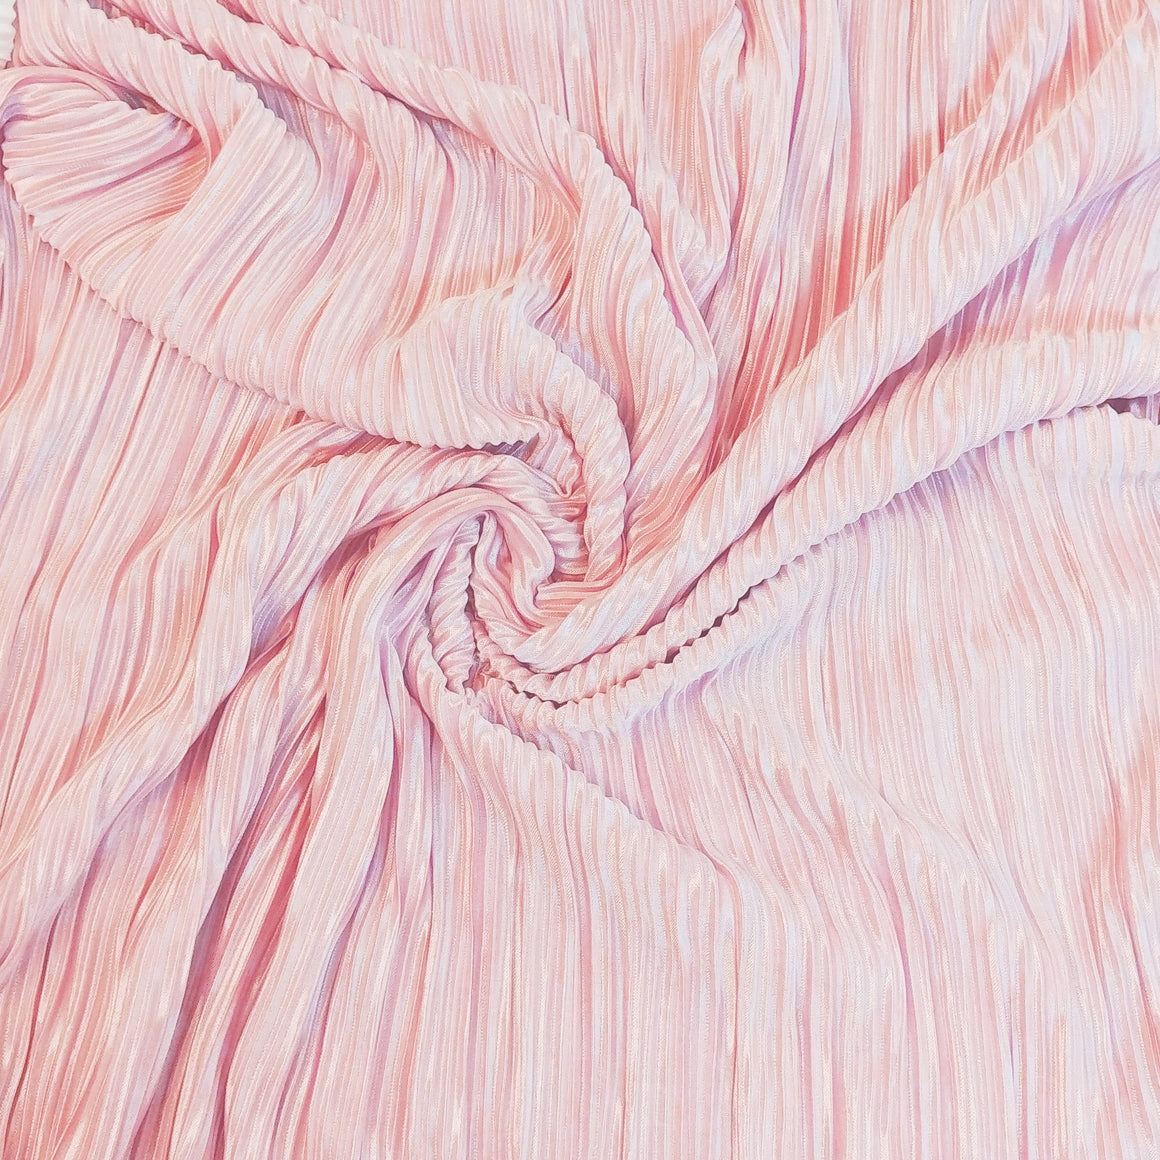 Light Pink Pleated Satin Fabric, 1 yard - Raspberry Creek Fabrics